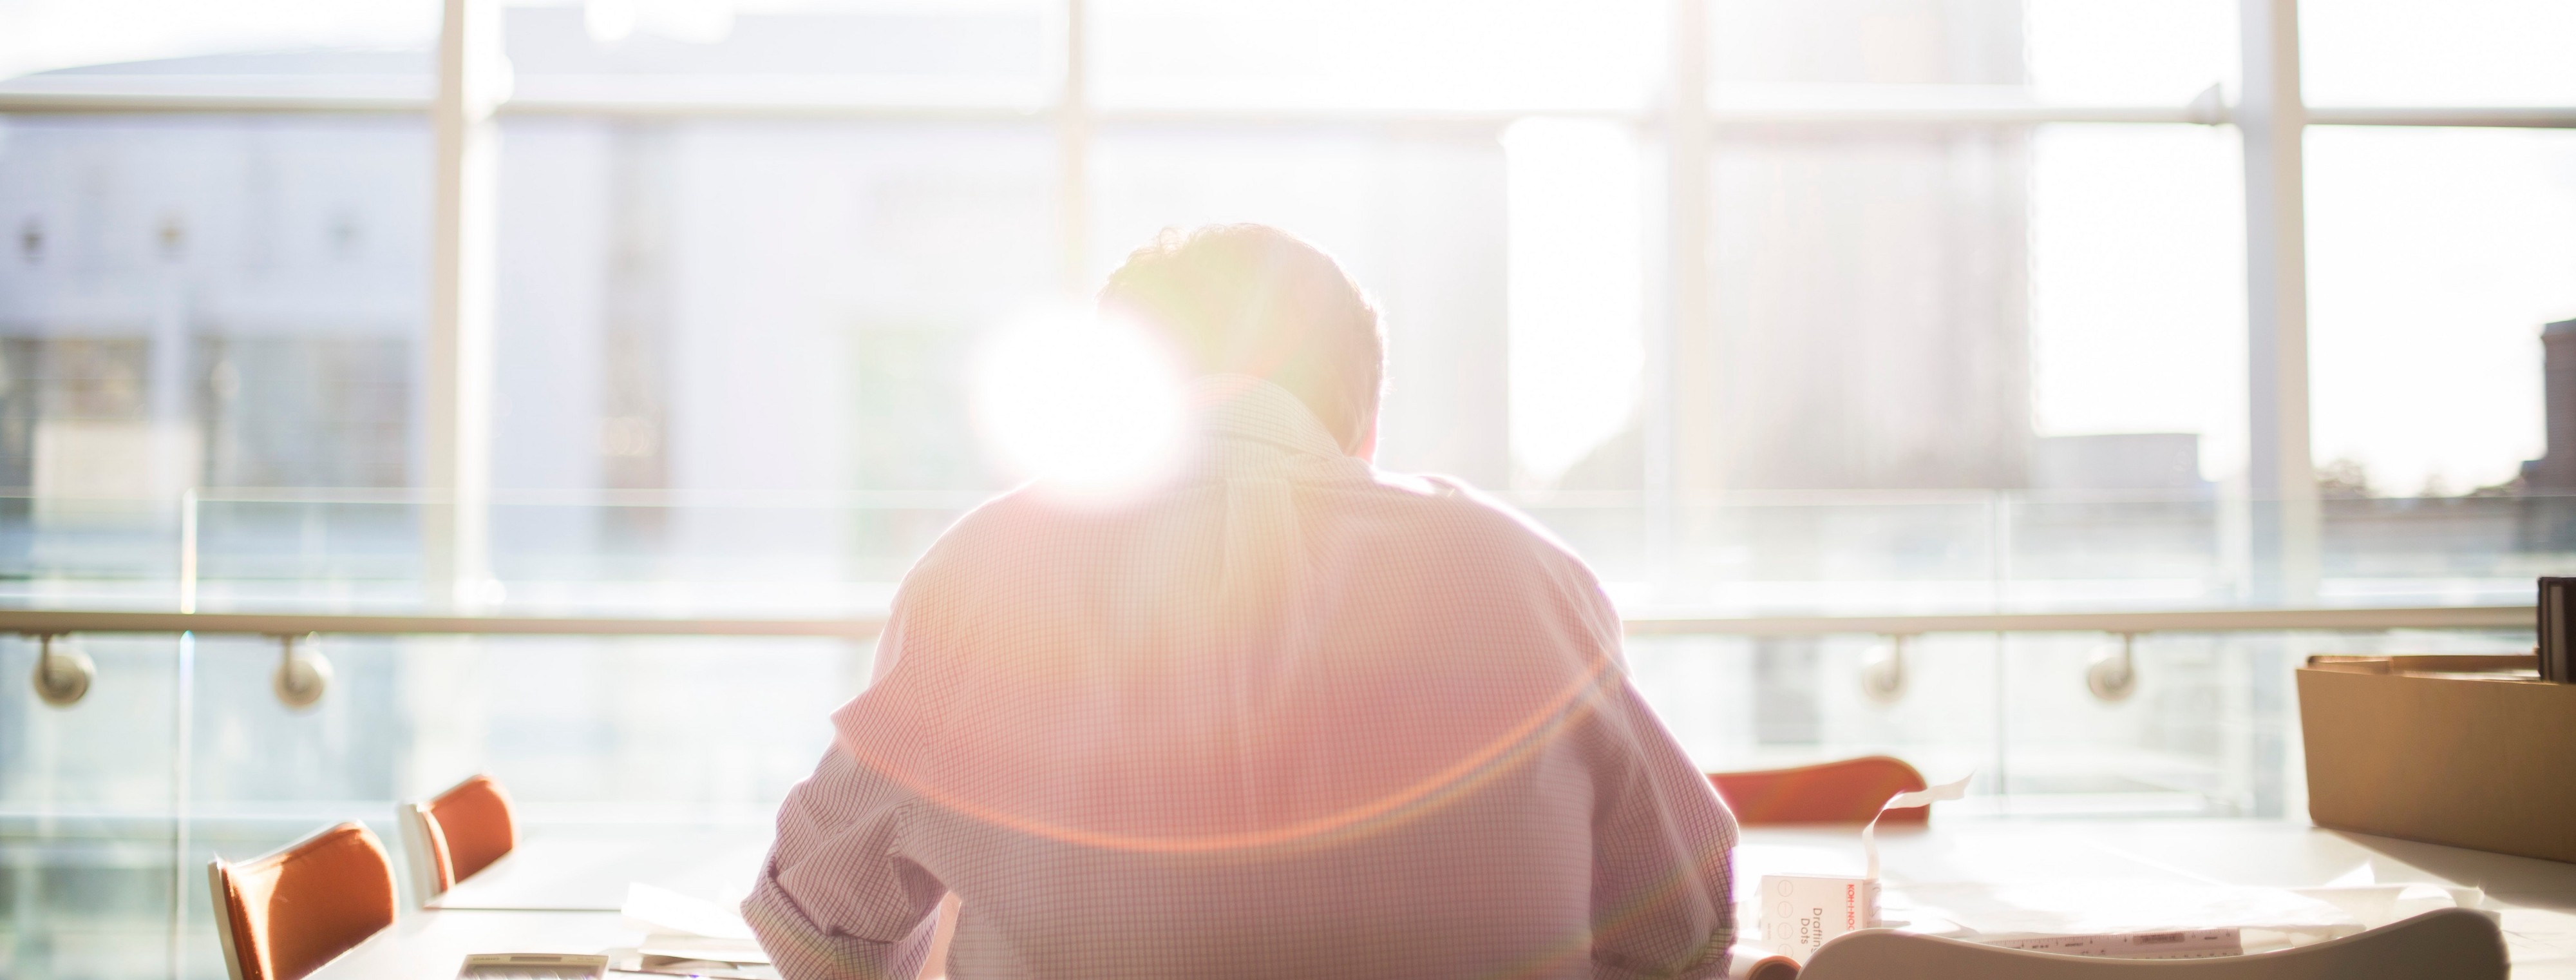 back of a man sitting on an empty conference room table with big window sunlight shining through